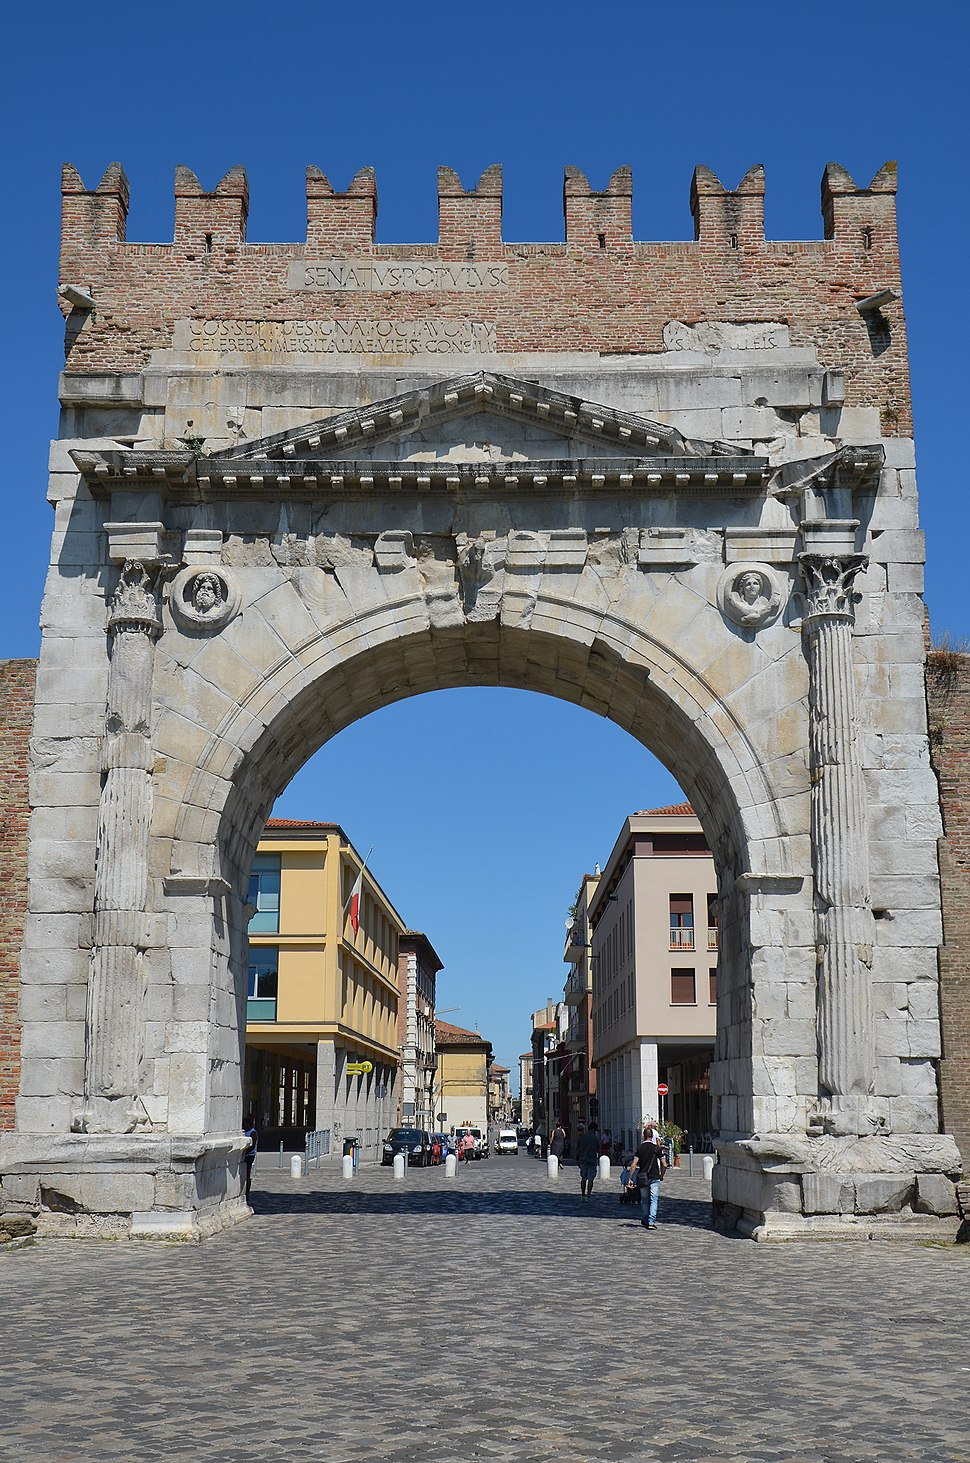 Arch of Augustus at Ariminum, dedicated to the Emperor Augustus by the Roman Senate in 27 BC, the oldest Roman arch which survives, Rimini, Italy (19948839545)